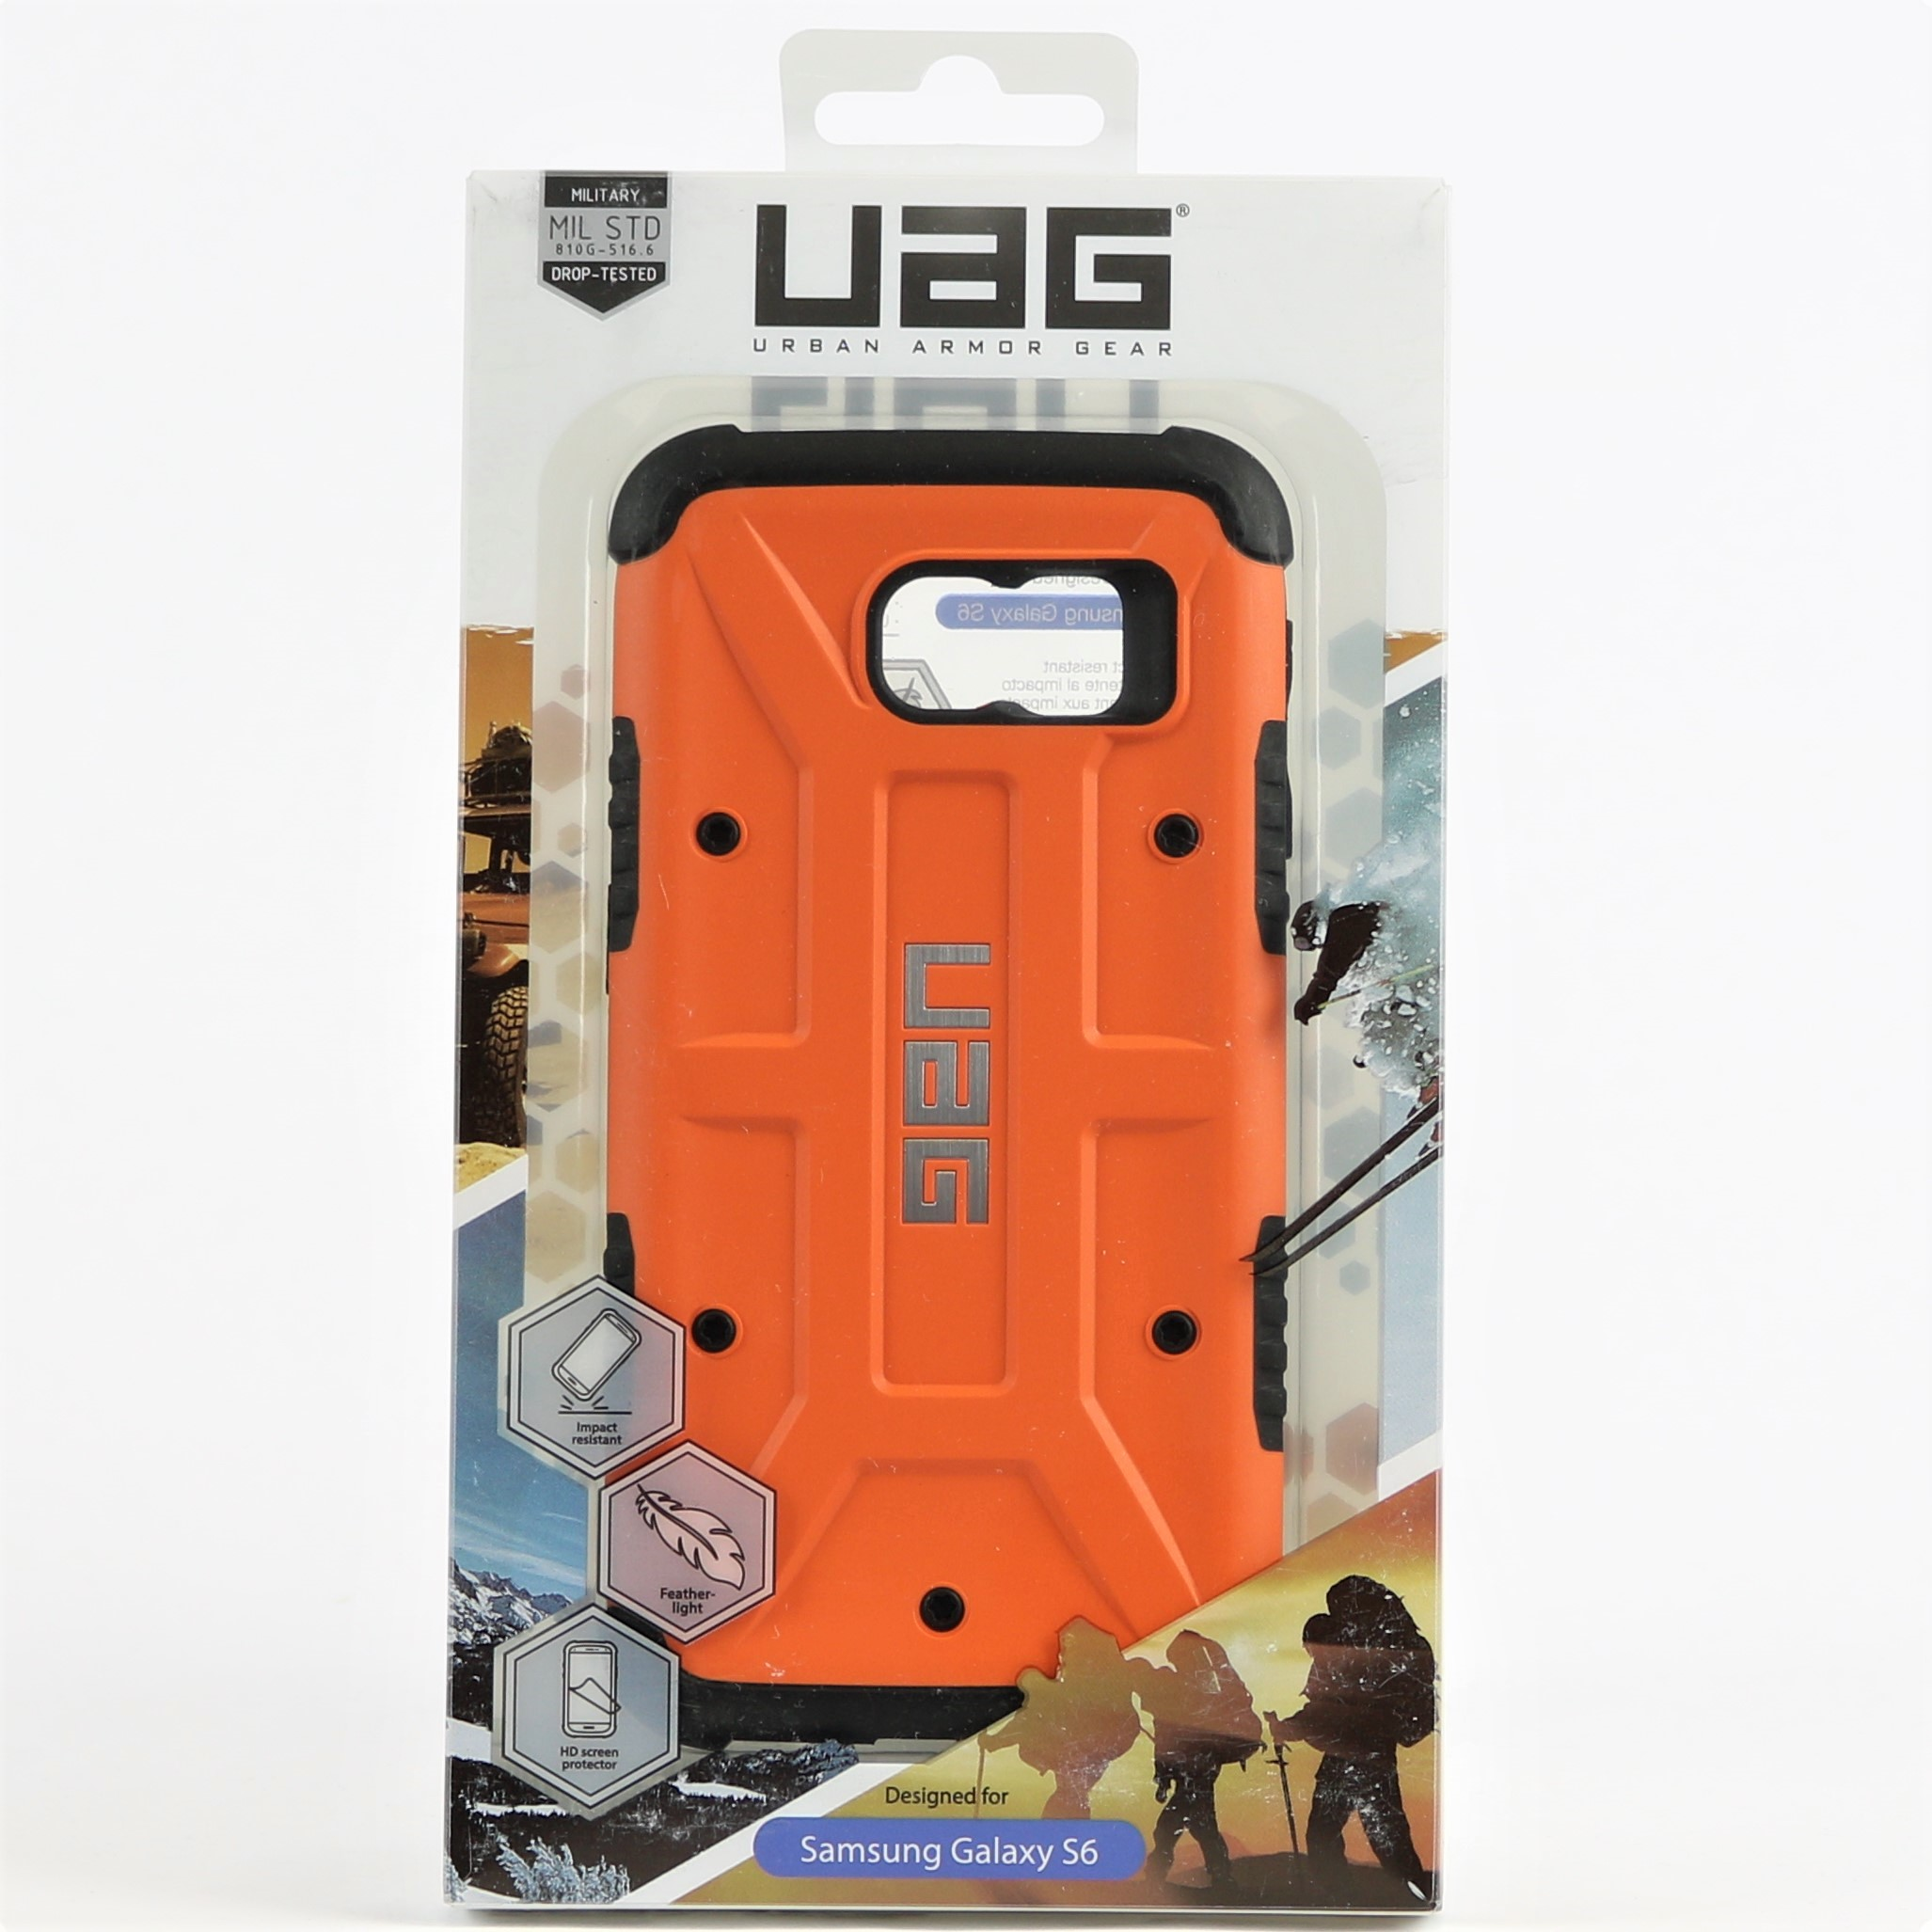 Galaxy s6 cases shop samsung cases online uag urban armor gear - Click Thumbnails To Enlarge Feather Light Military Grade Protection For Your Samsung Galaxy S6